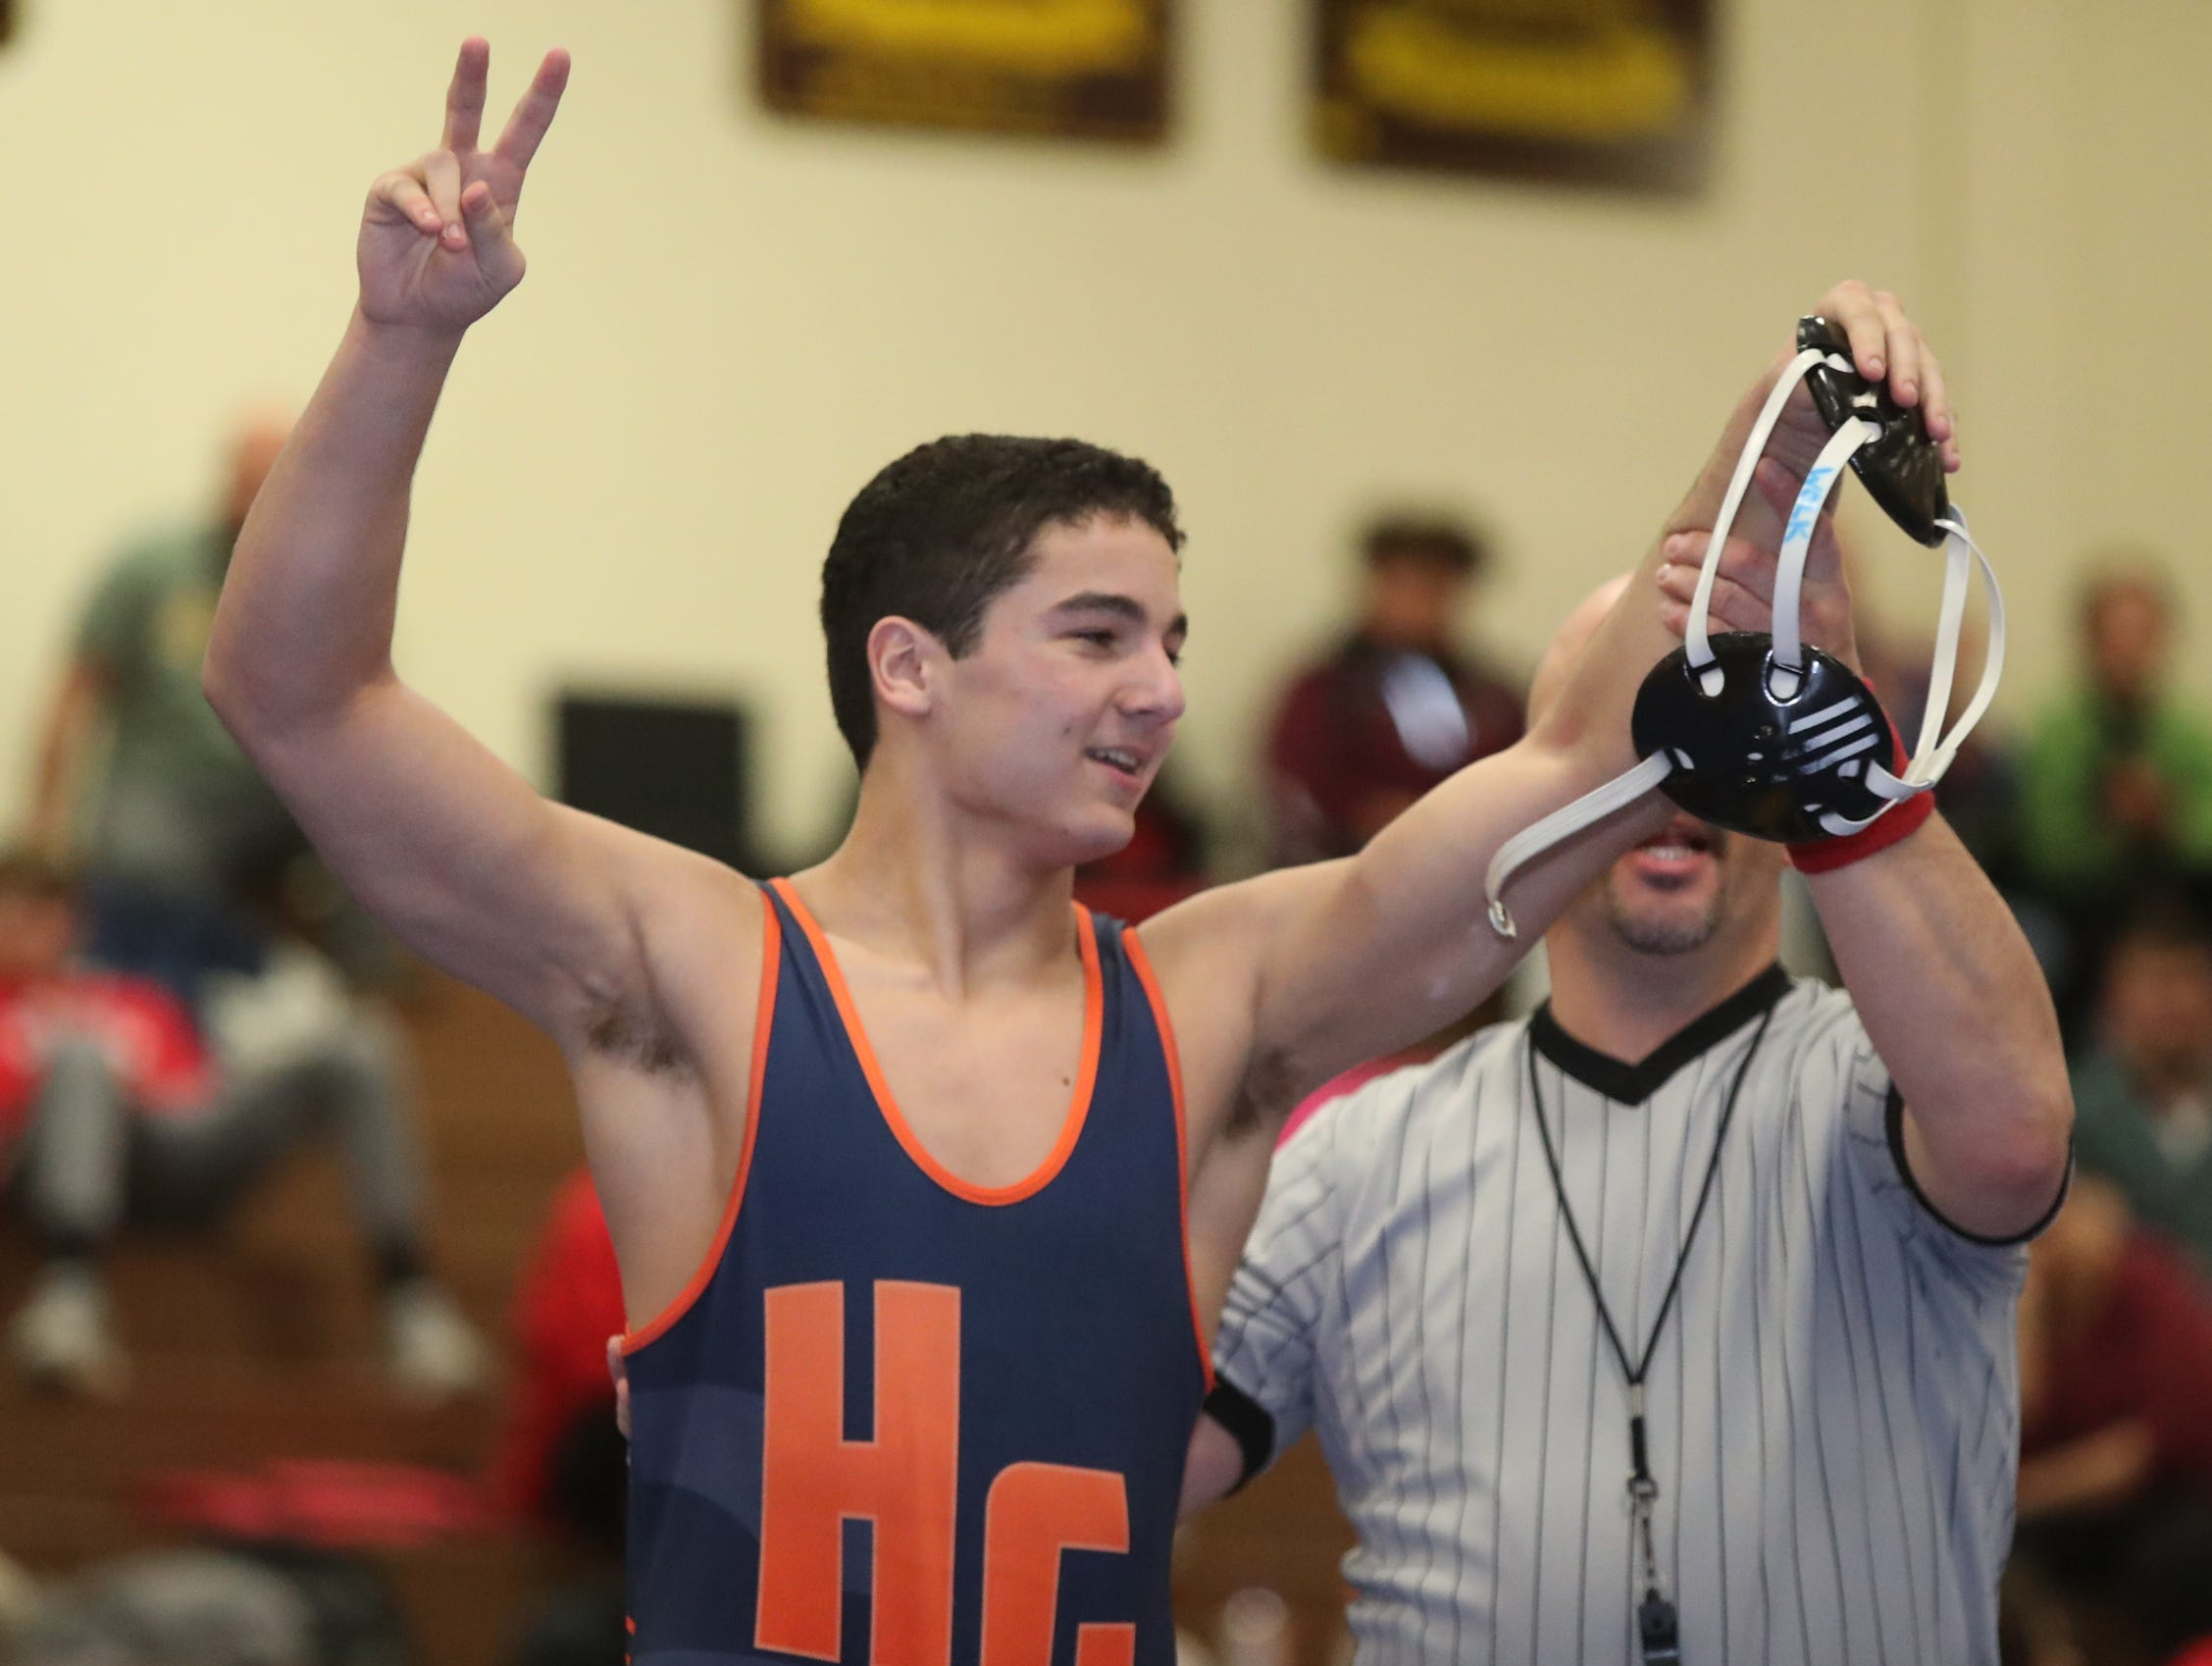 Horace Greeley's Aaron Wolk defeats Carmel's Ben Rivera in the 170-pound match of the division I wrestling finals at Clarkstown South High School on Sunday, February 10, 2019.